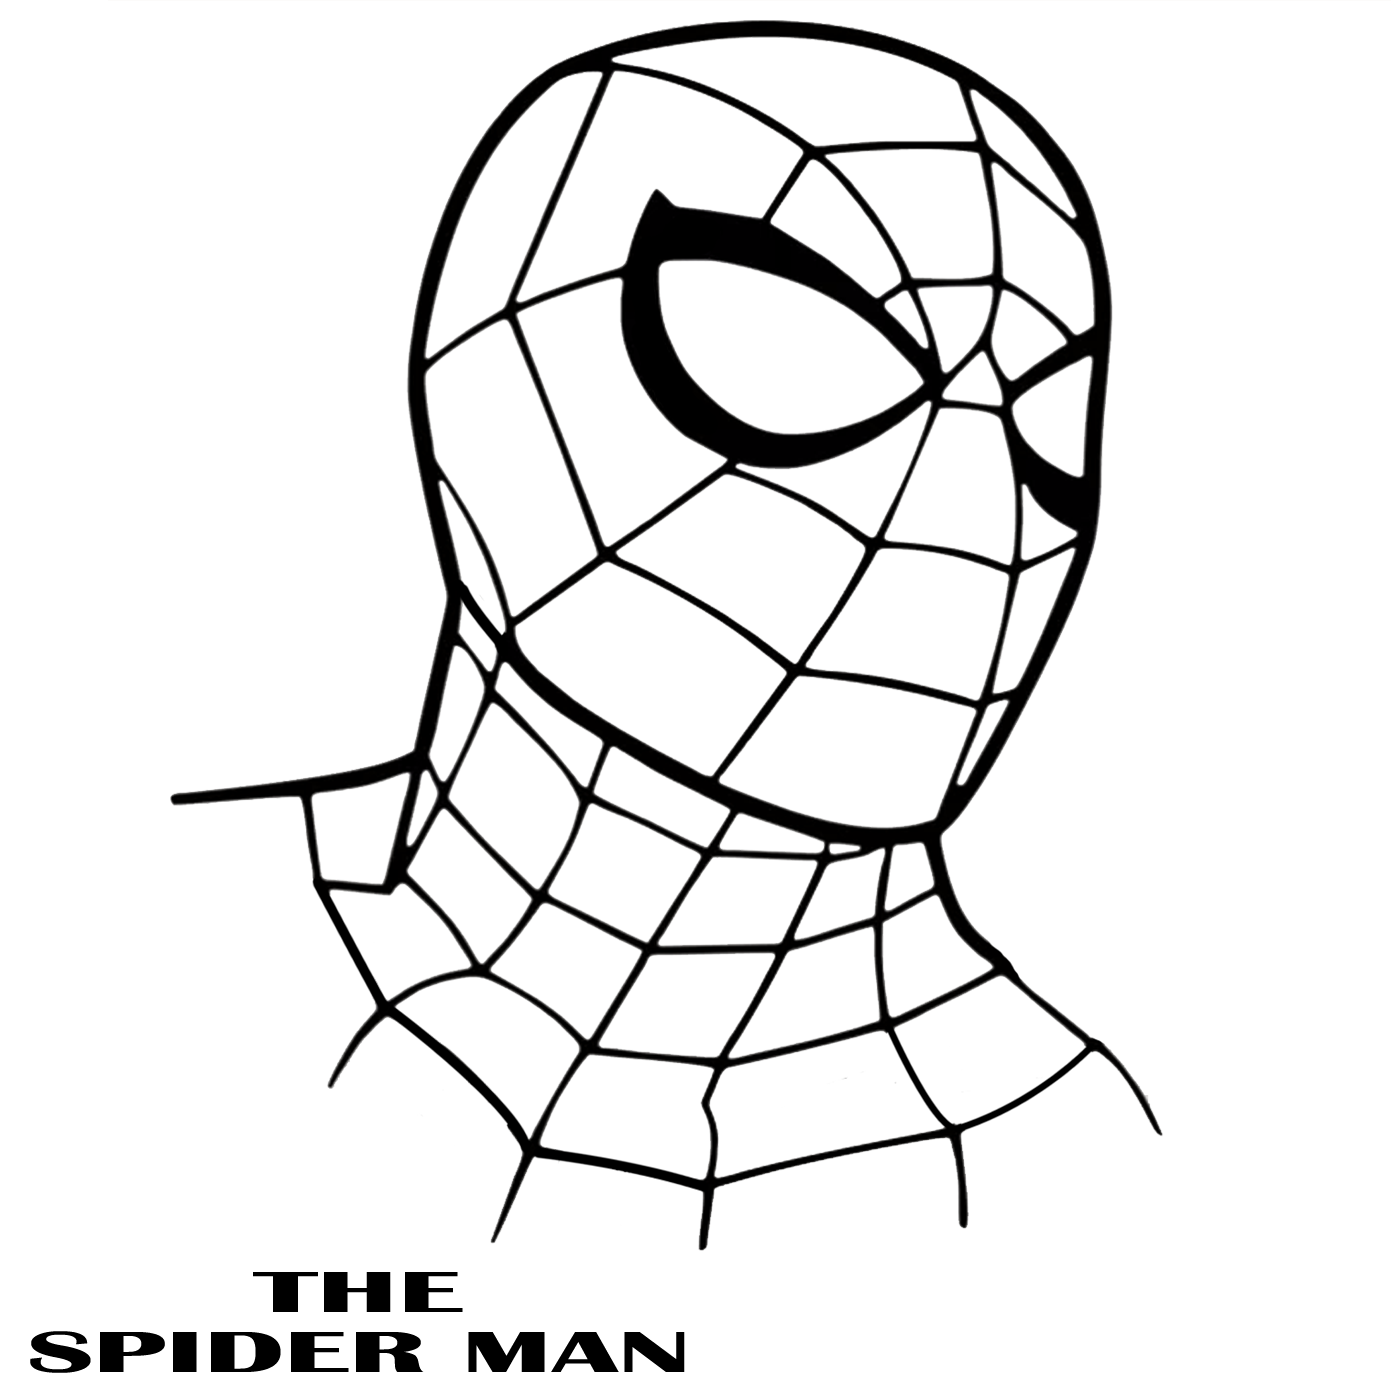 spiderman outline spiderman face drawing at getdrawings free download spiderman outline